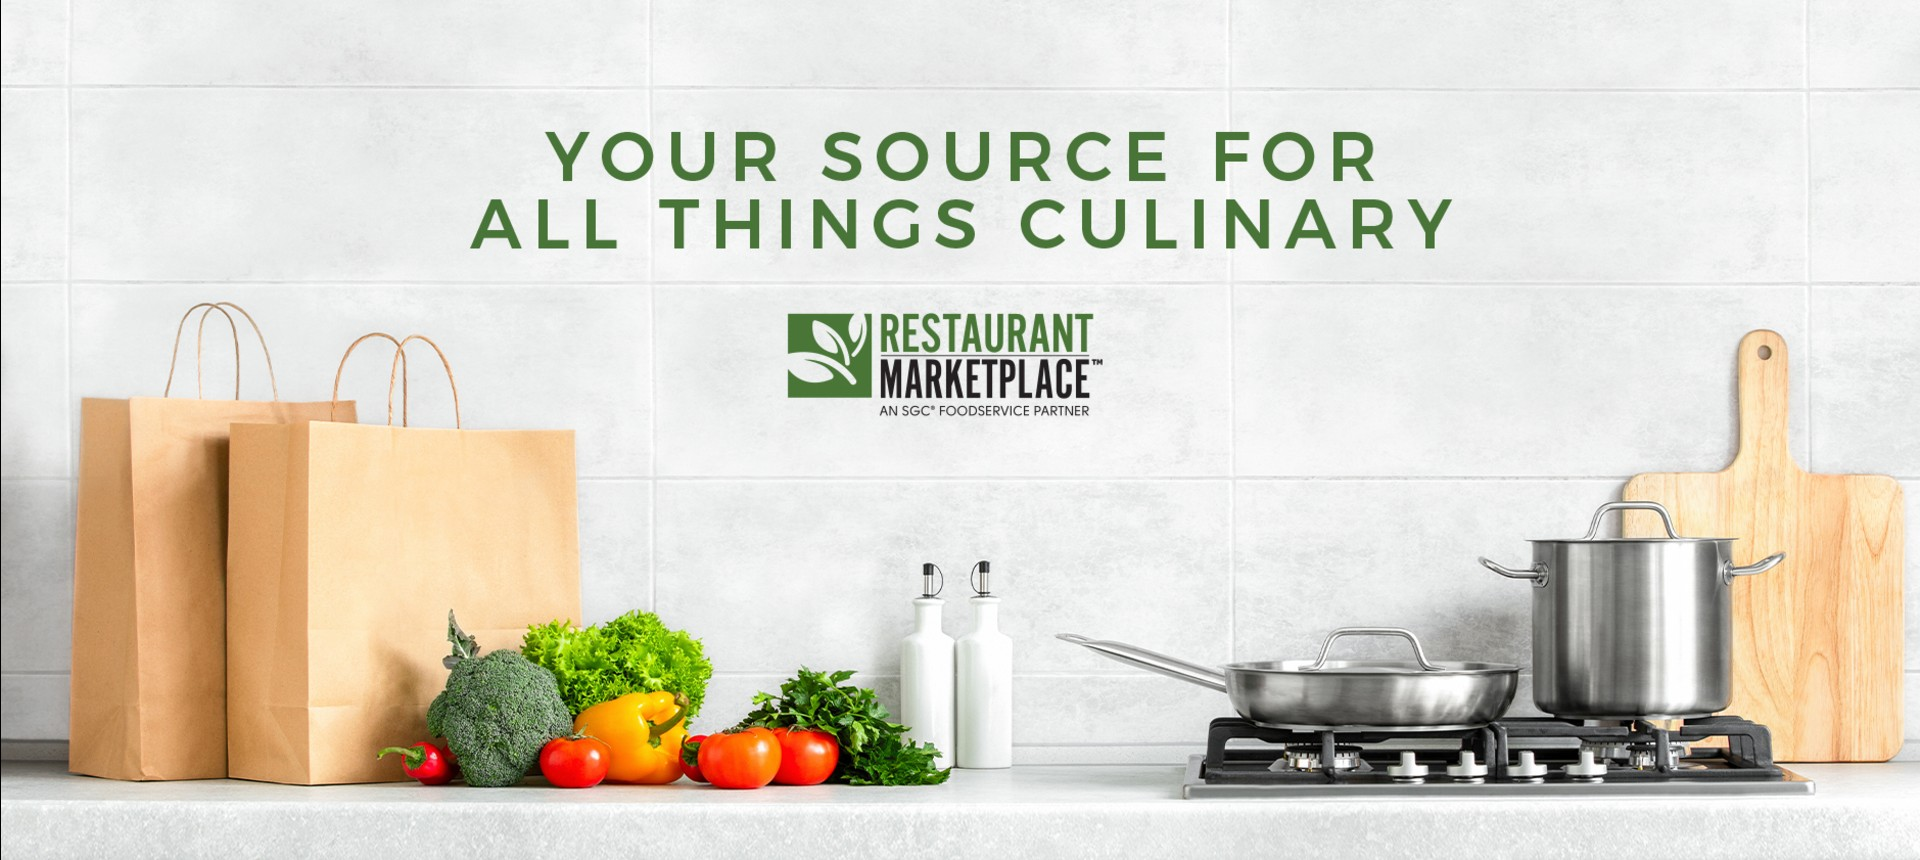 Restaurant Marketplace